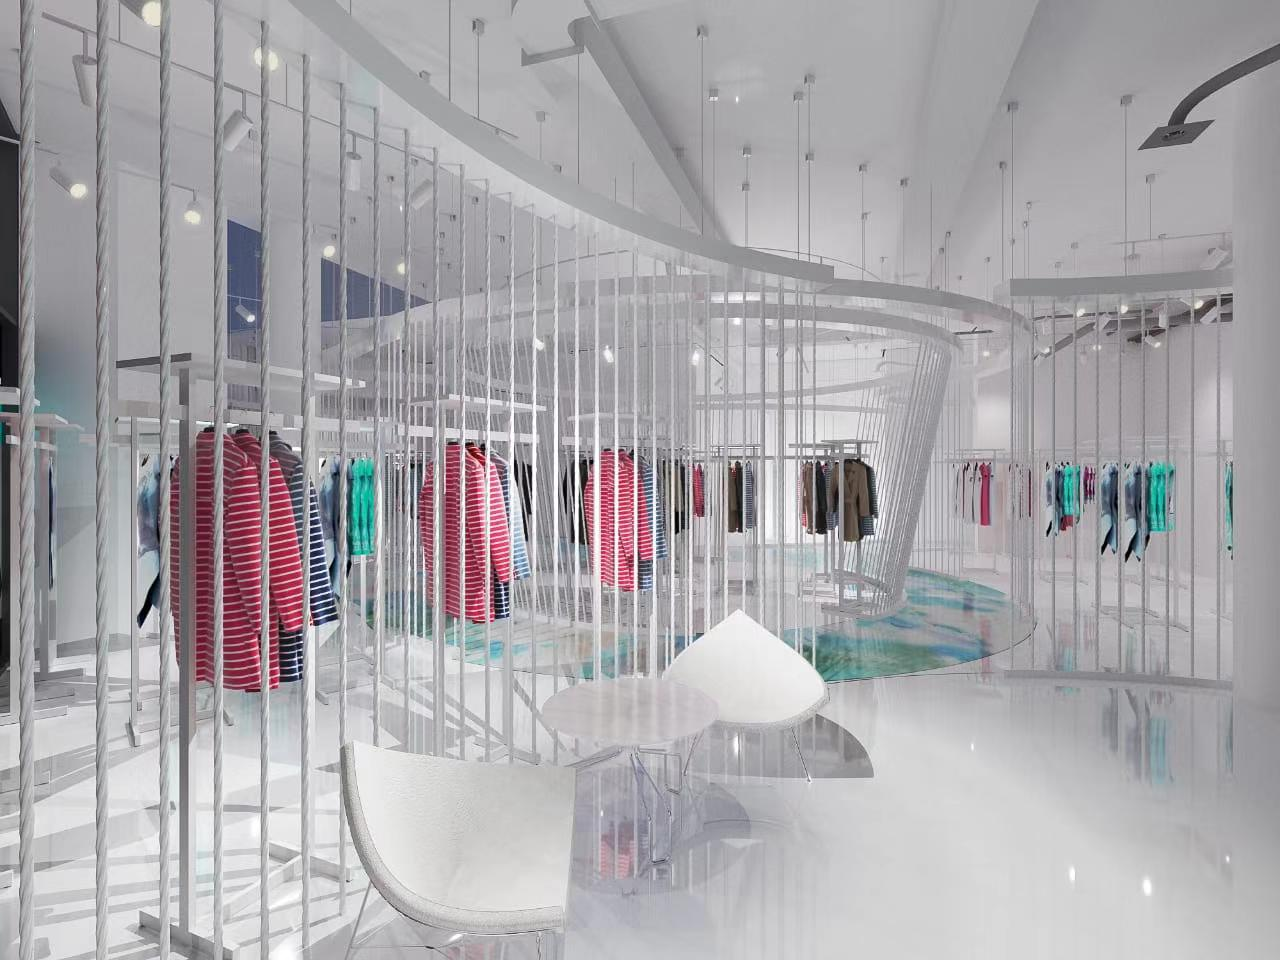 The Arab Fashion Council and Meeras teamed up on the 40 Million Dhs concept store